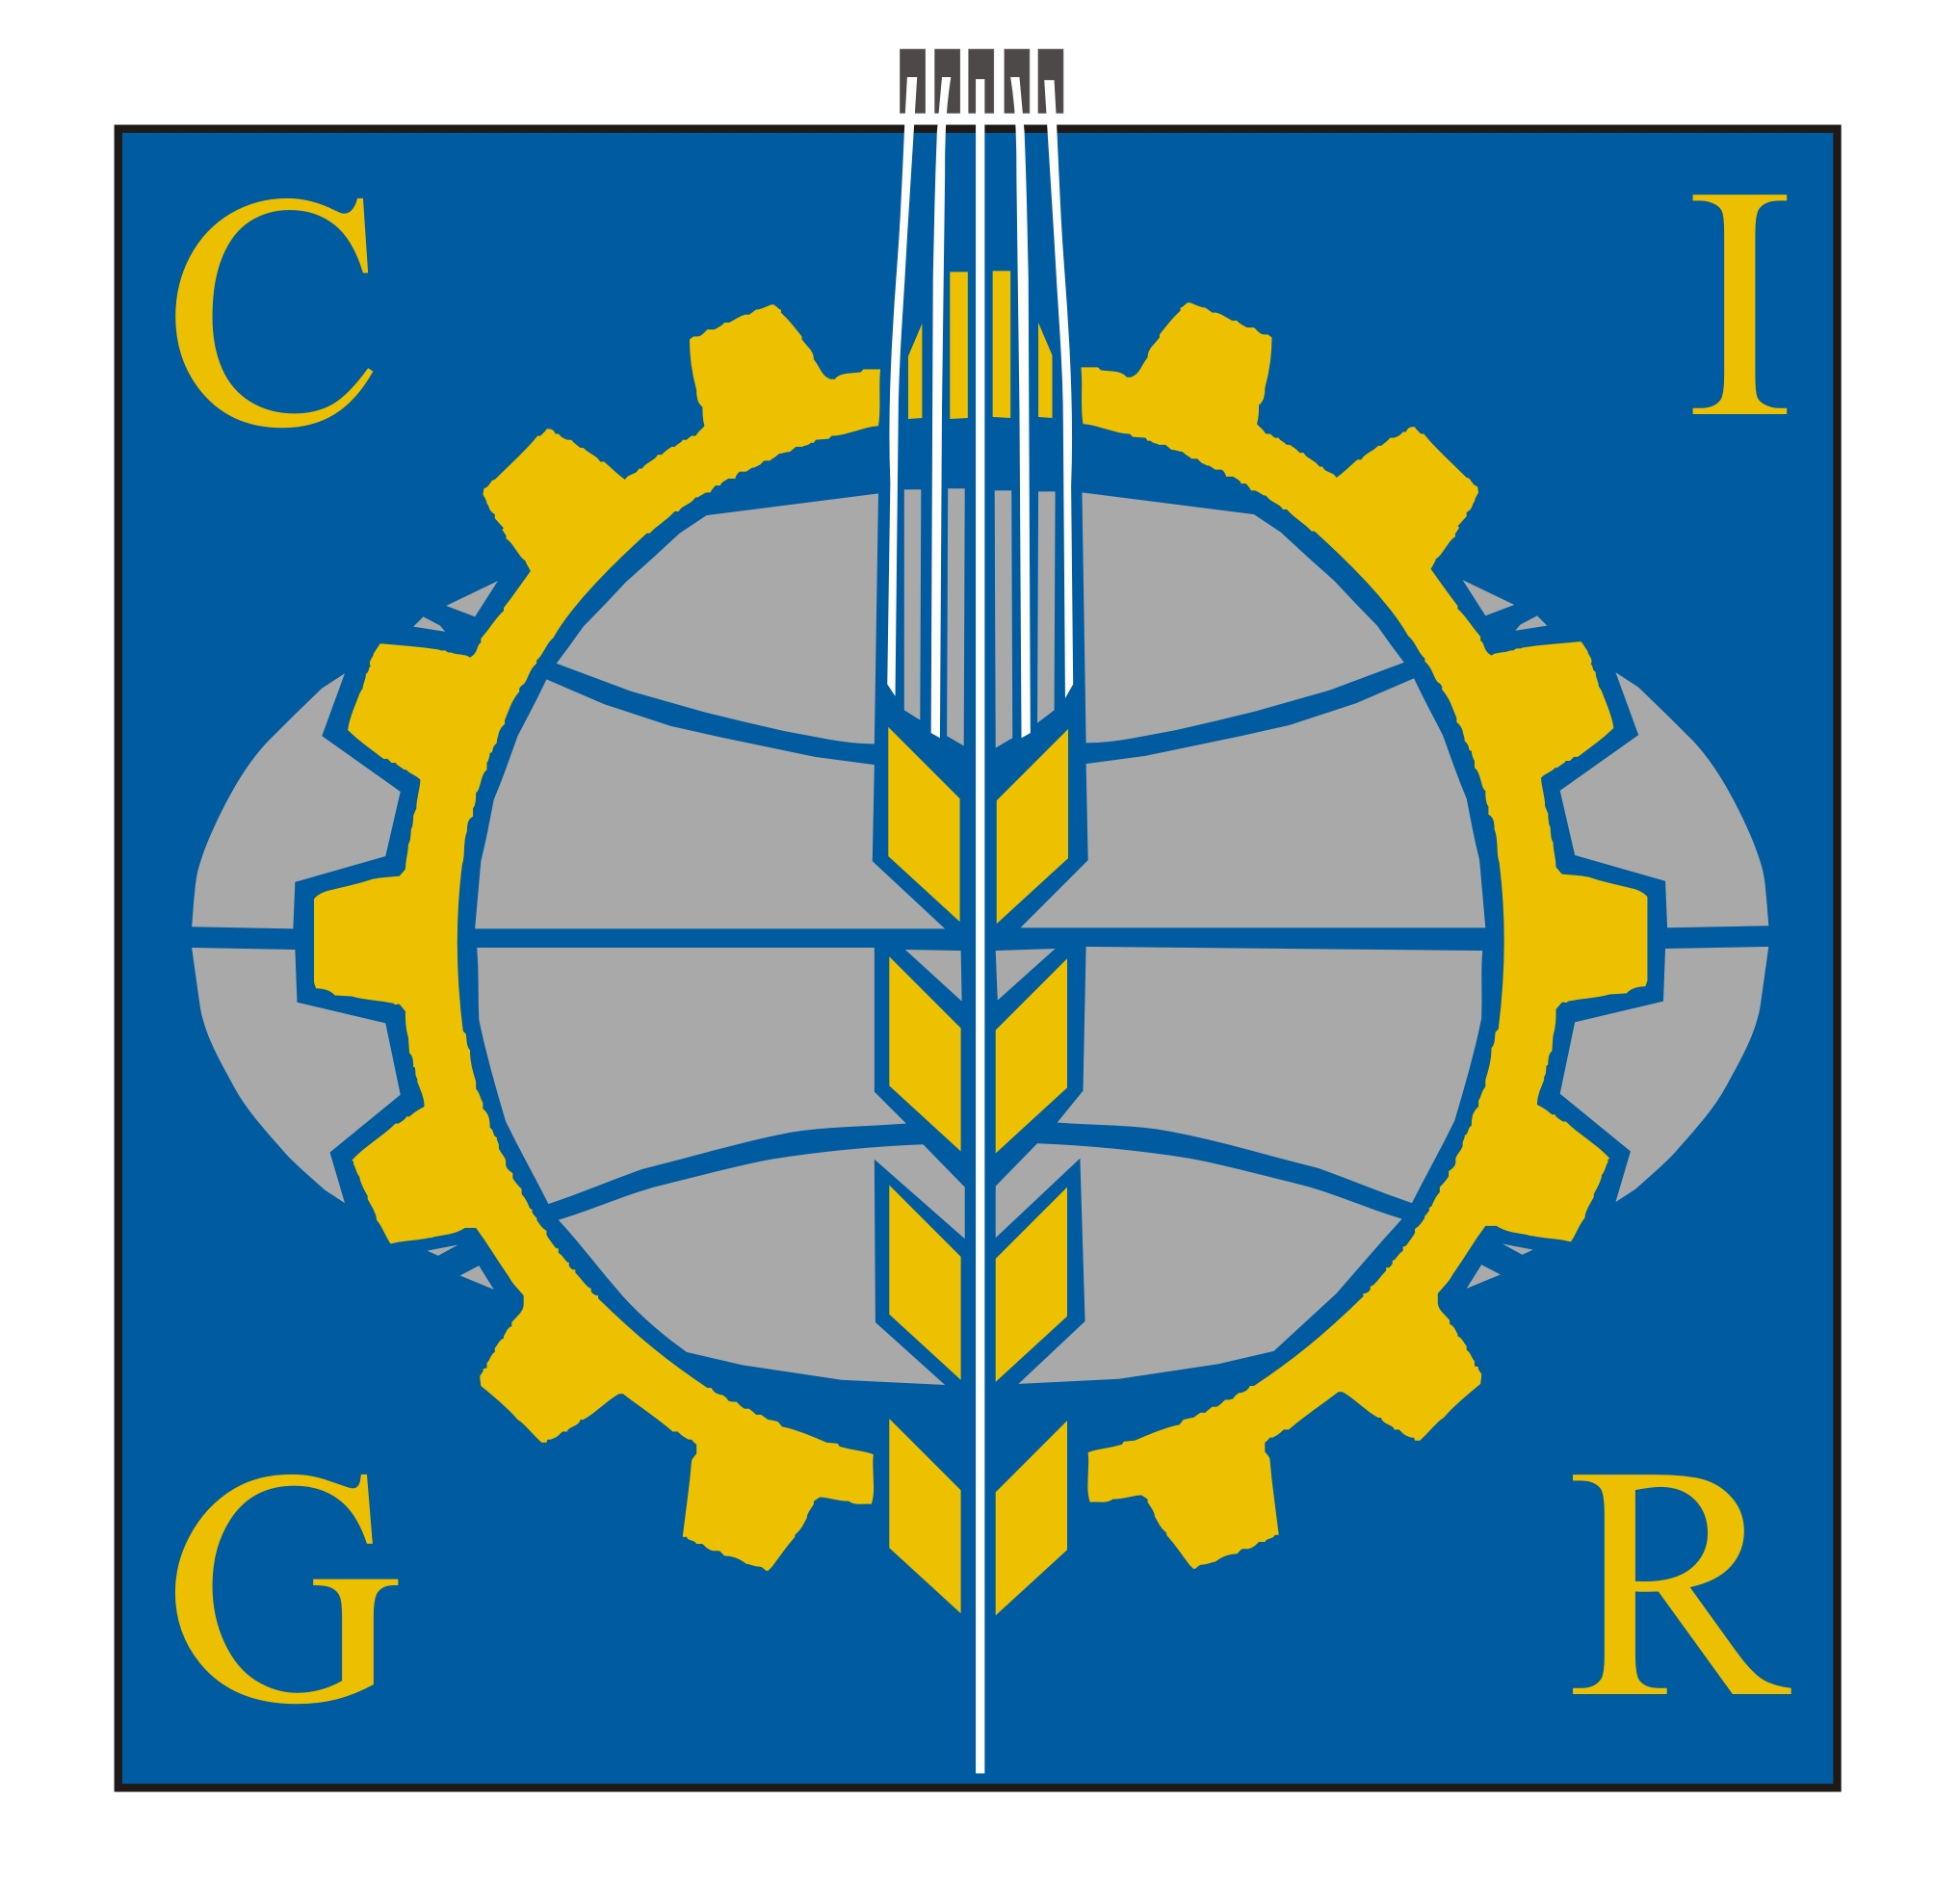 logo for International Commission of Agricultural and Biosystems Engineering